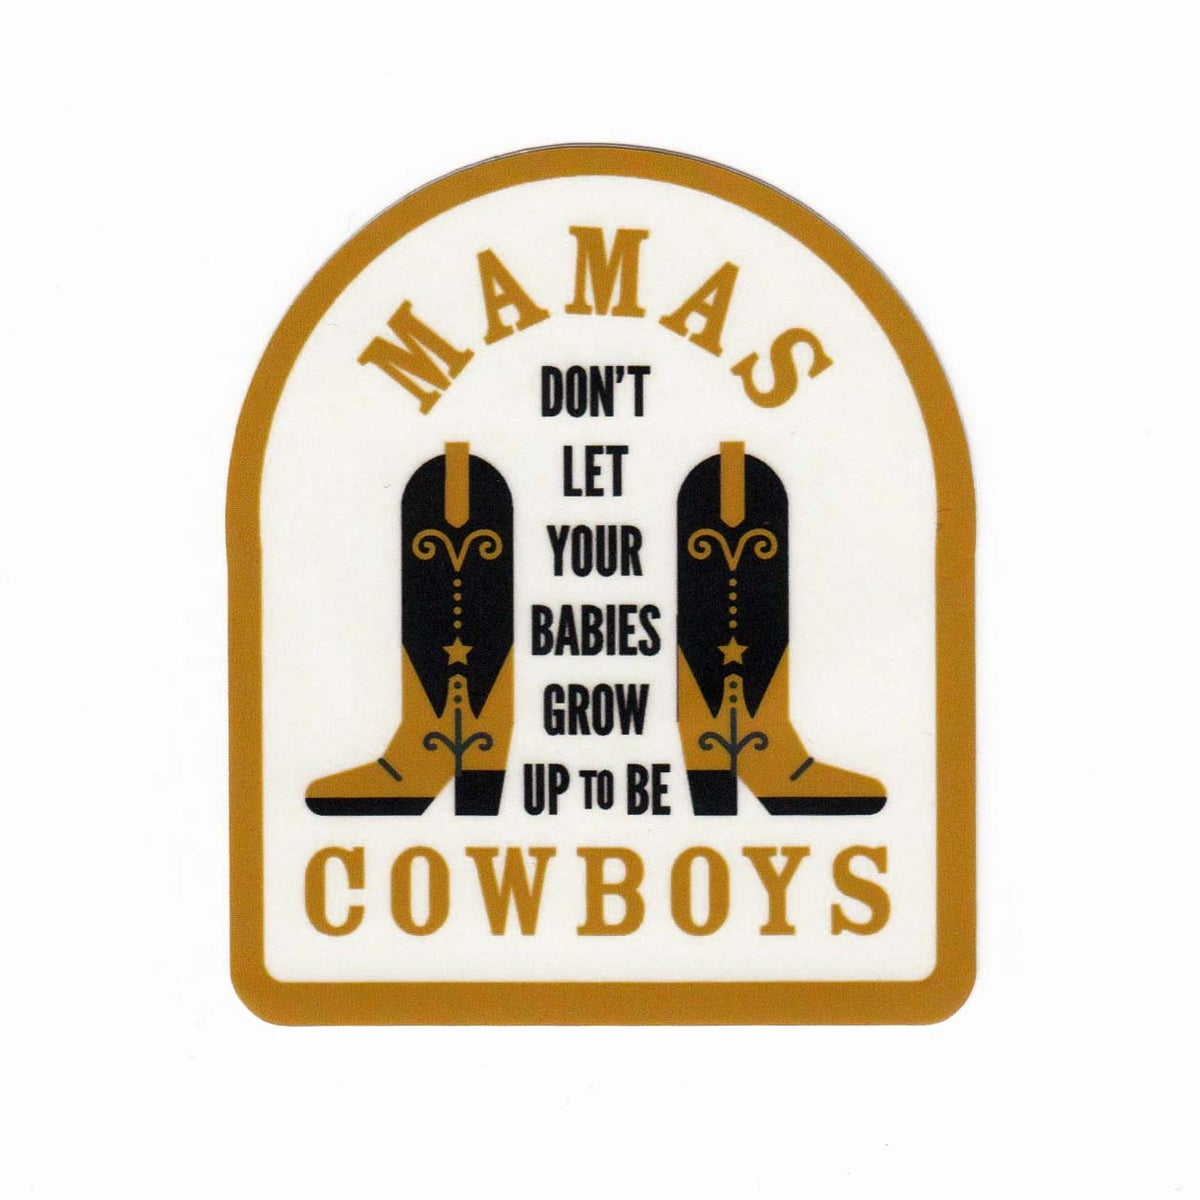 Image of Mamas, Don't Let Your Babies Grow Up to Be Cowboys Sticker